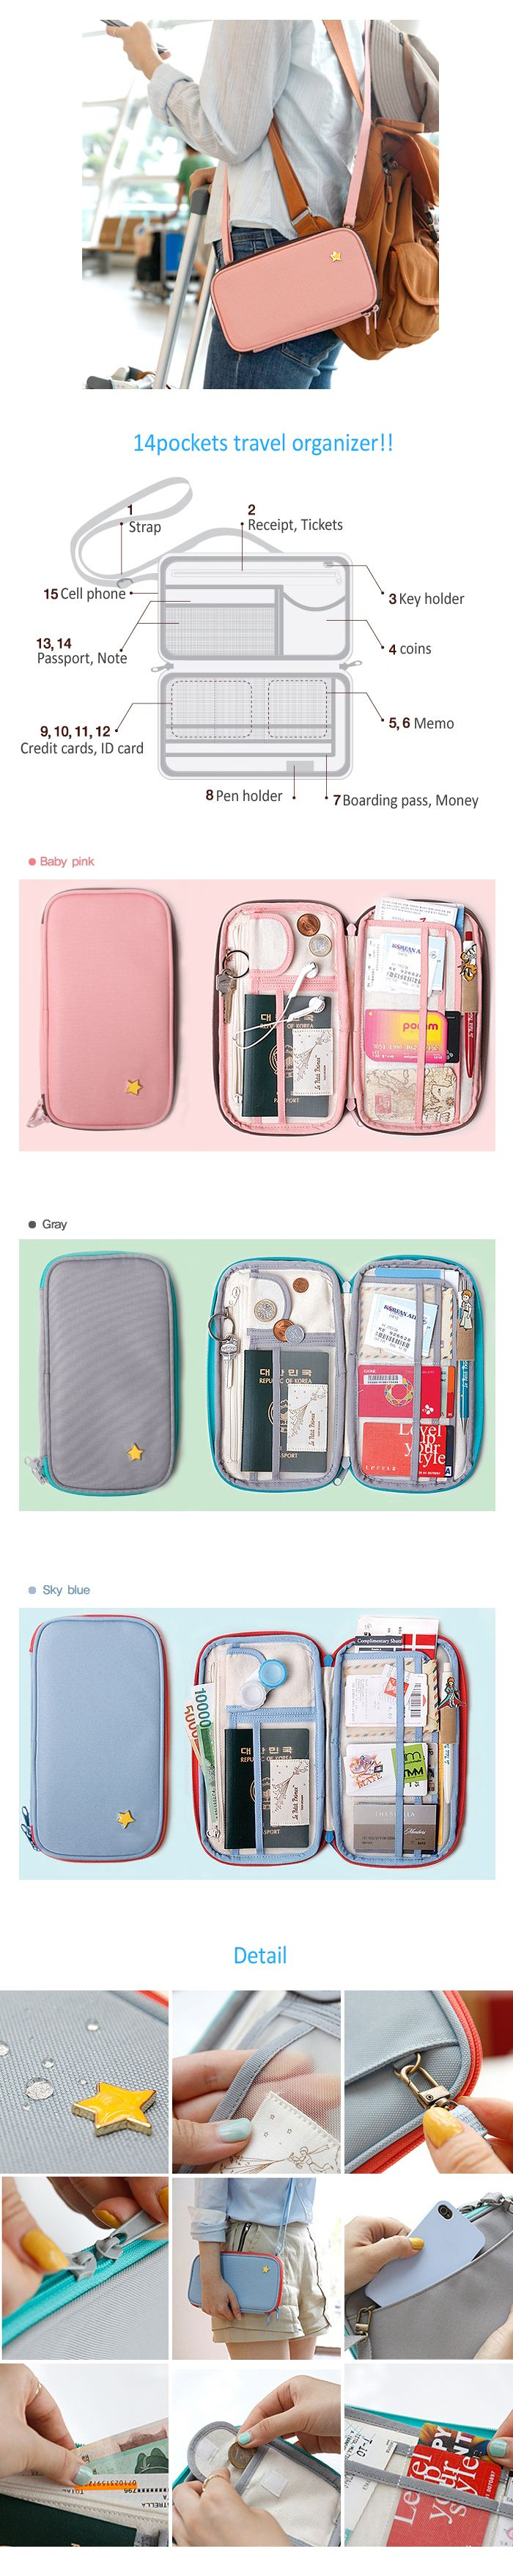 actually pretty cute and seems like a great way to keep things organized